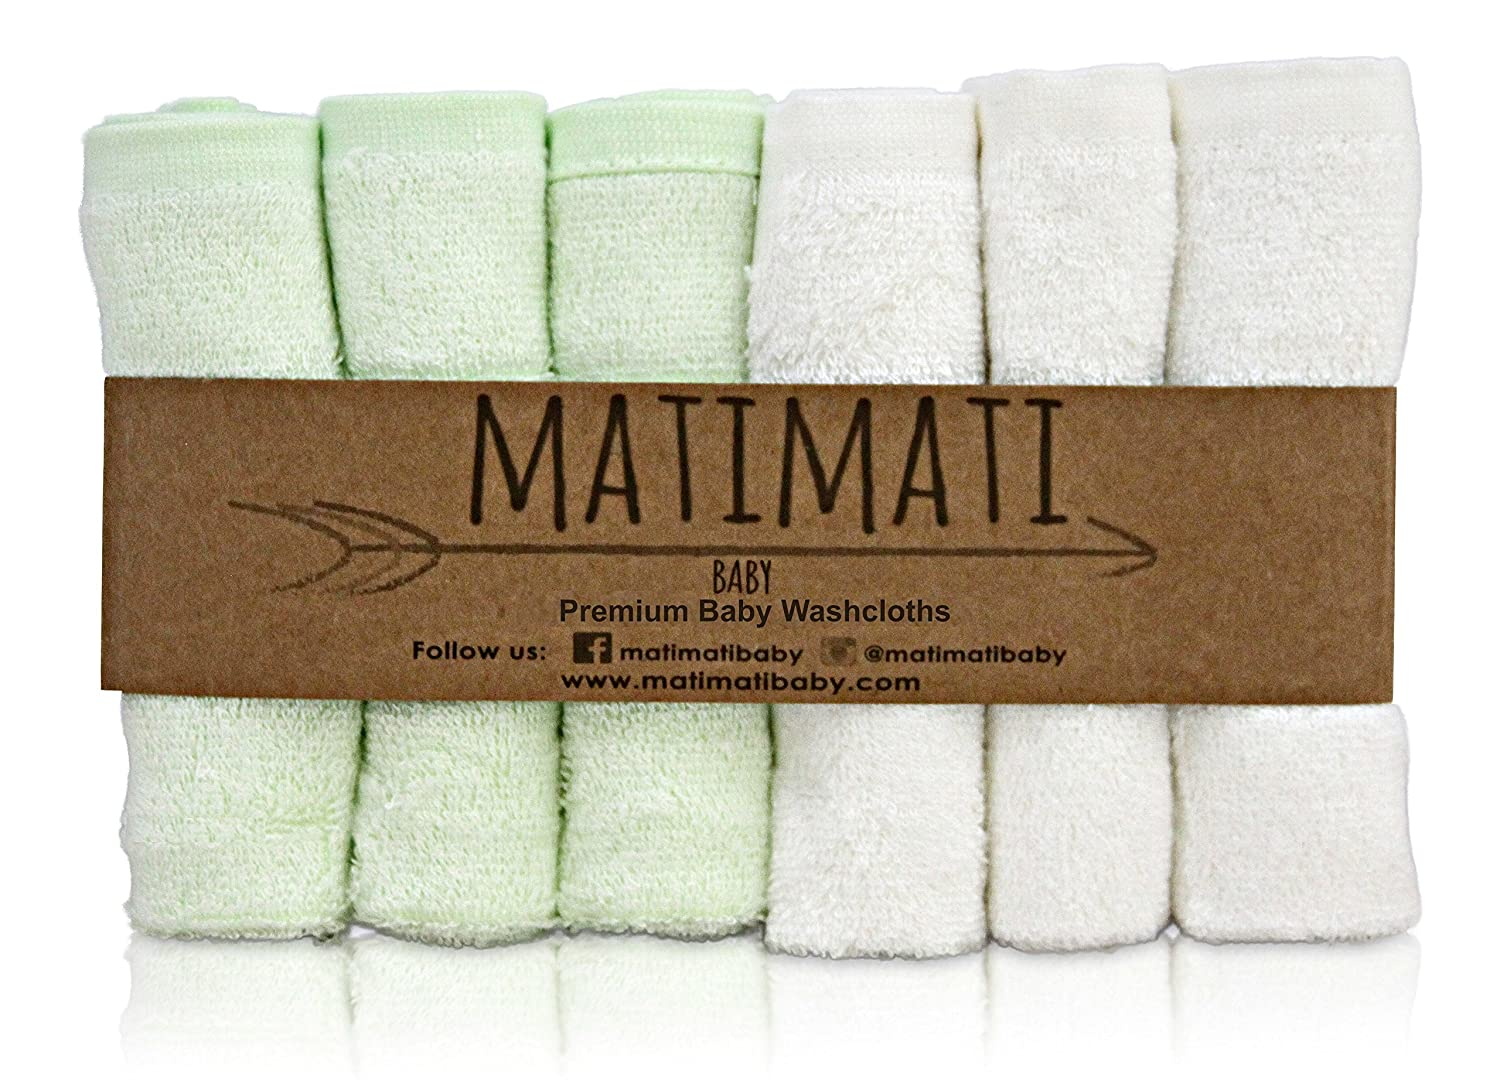 "Matimati Rayon From Bamboo Baby Washcloths (6-pack) - Soft & Absorbent Towels For Baby's Sensitive Skin - Perfect 10""x10"" Reusable Wipes - Excellent Shower / Registry Gift Matimati Baby"